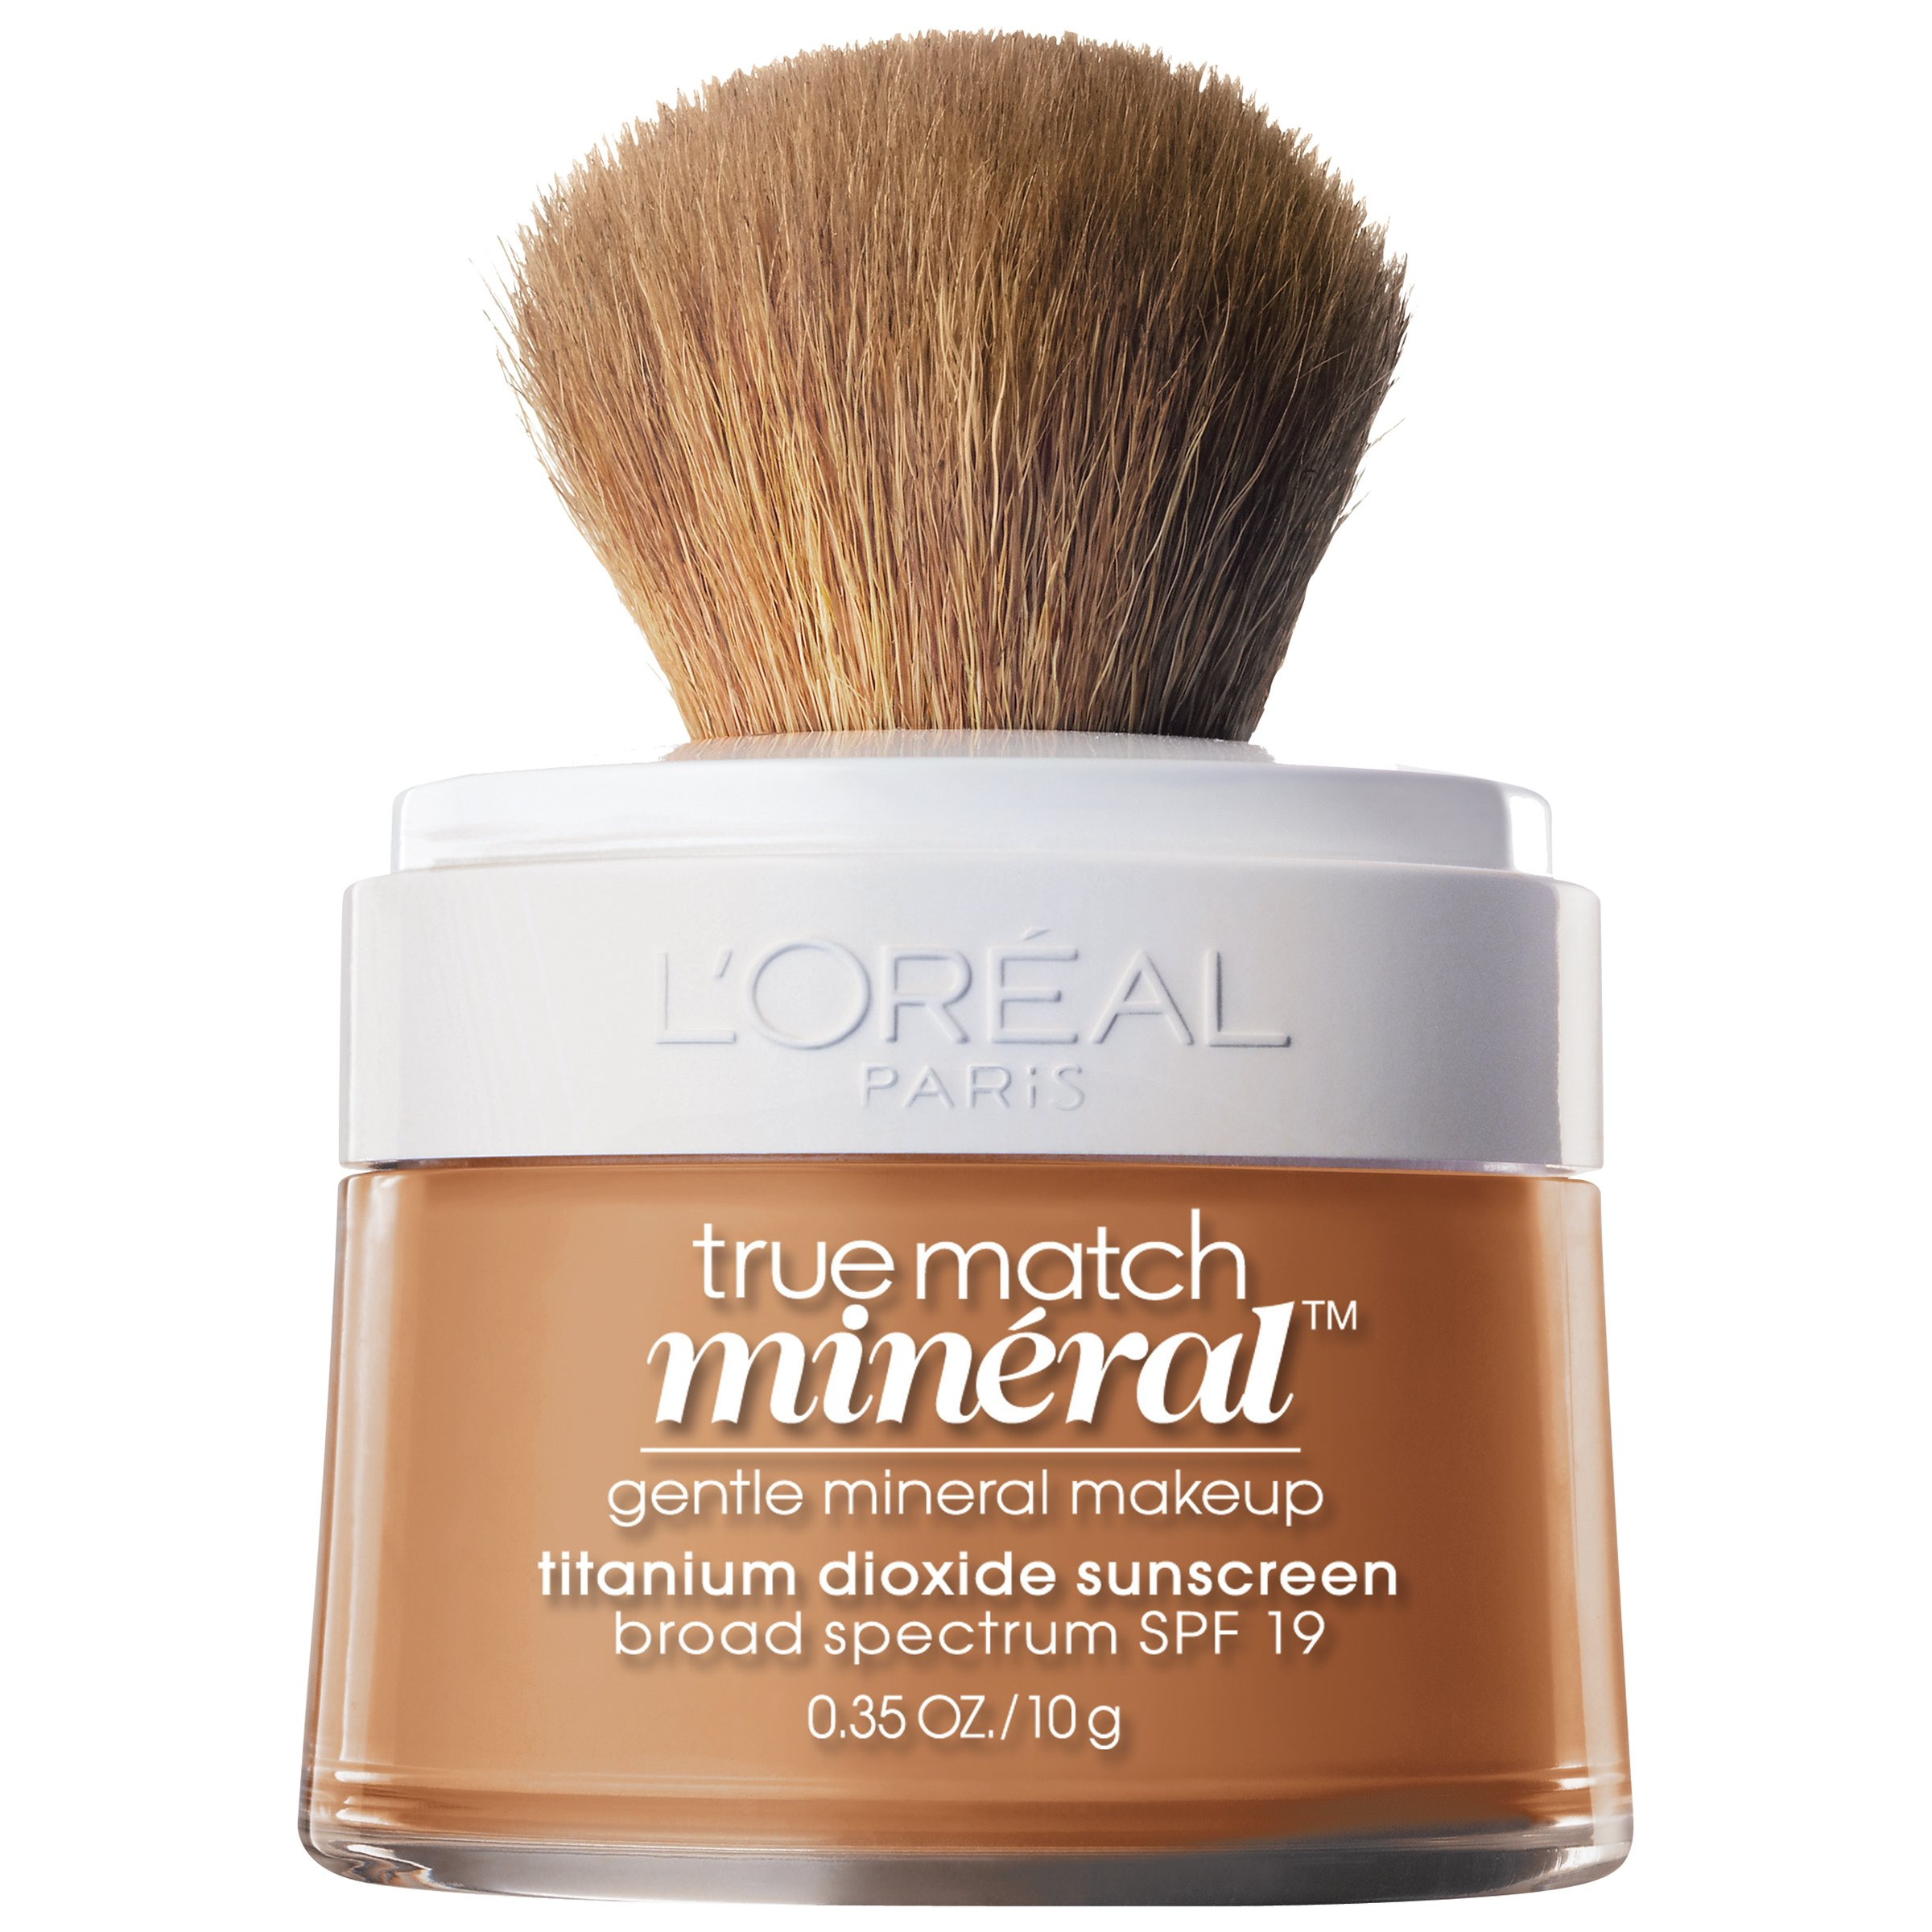 L'Oréal Paris True Match Loose Powder Mineral Foundation, Sun Beige, 0.35 oz.